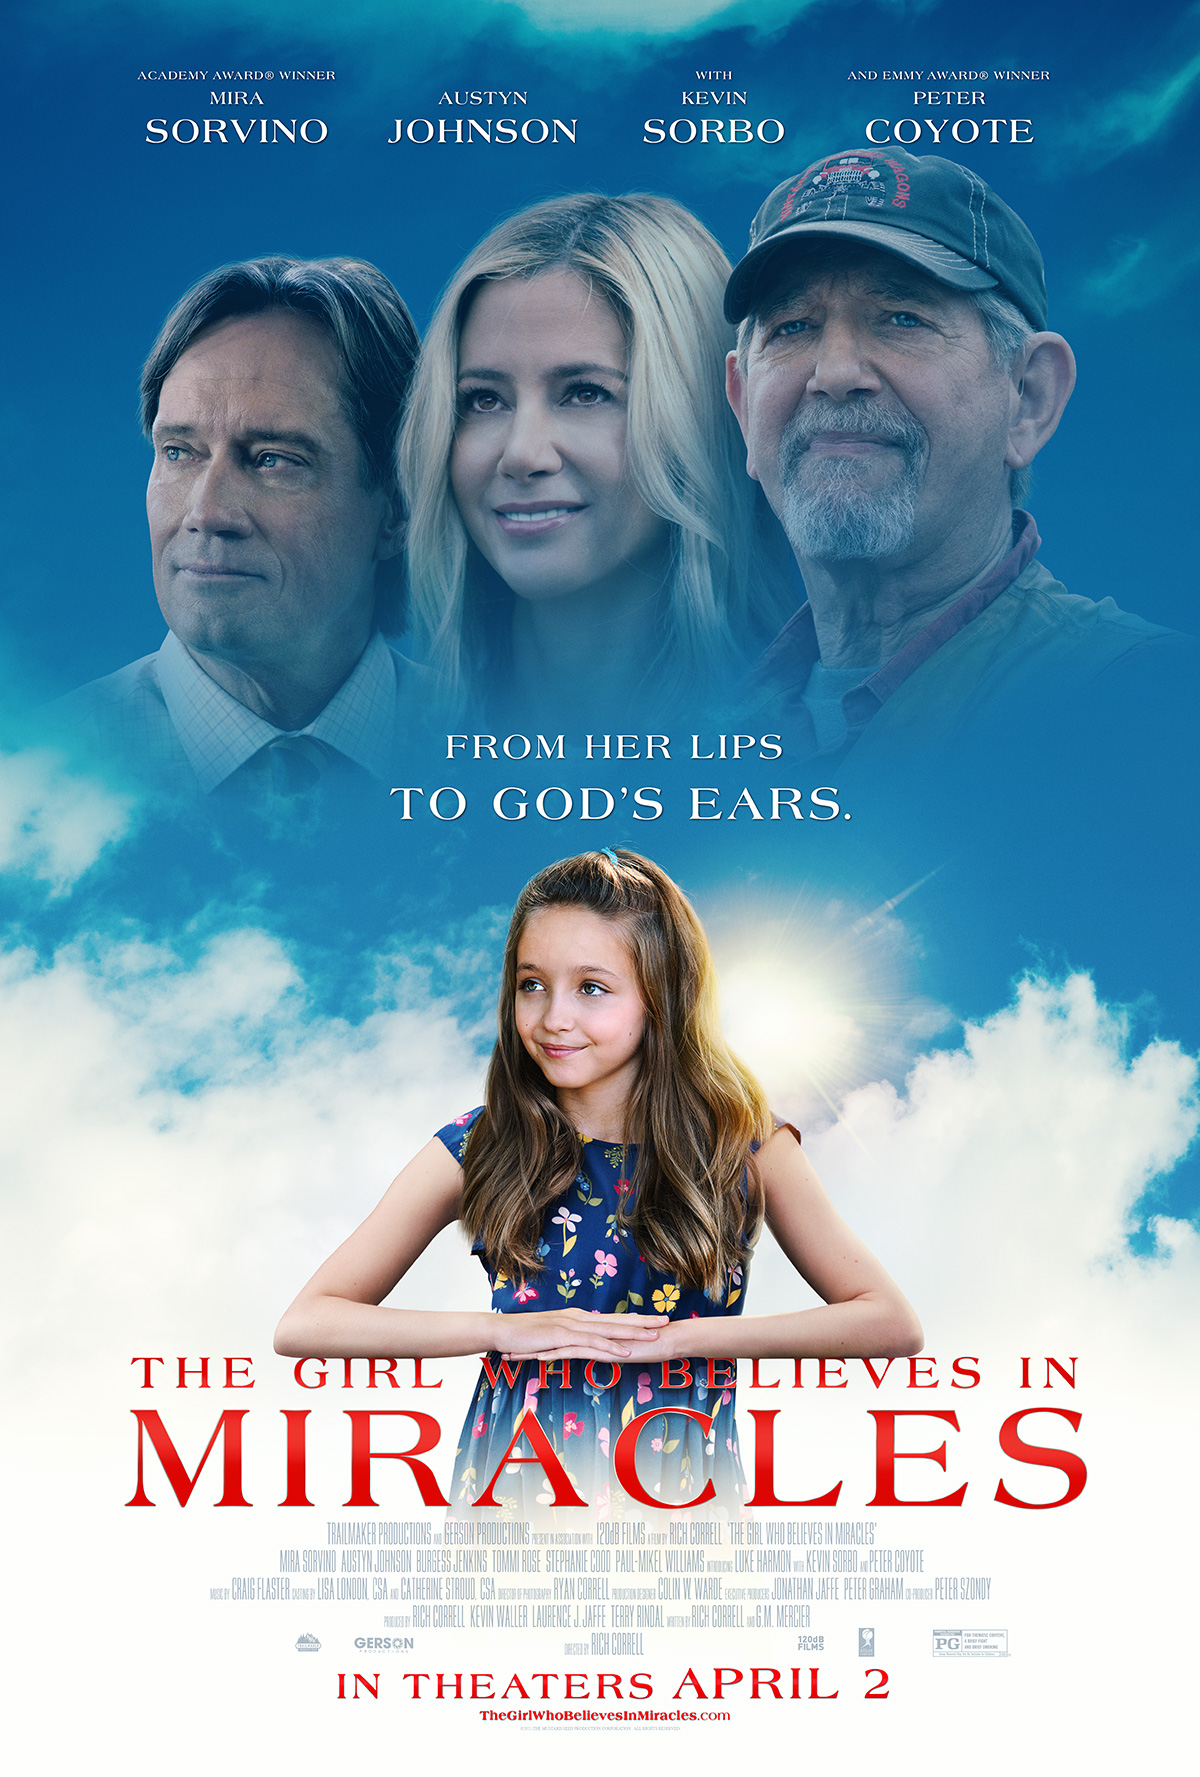 Klove Christmas Tour 2021 Trailor The Girl Who Believes In Miracles 2021 Imdb